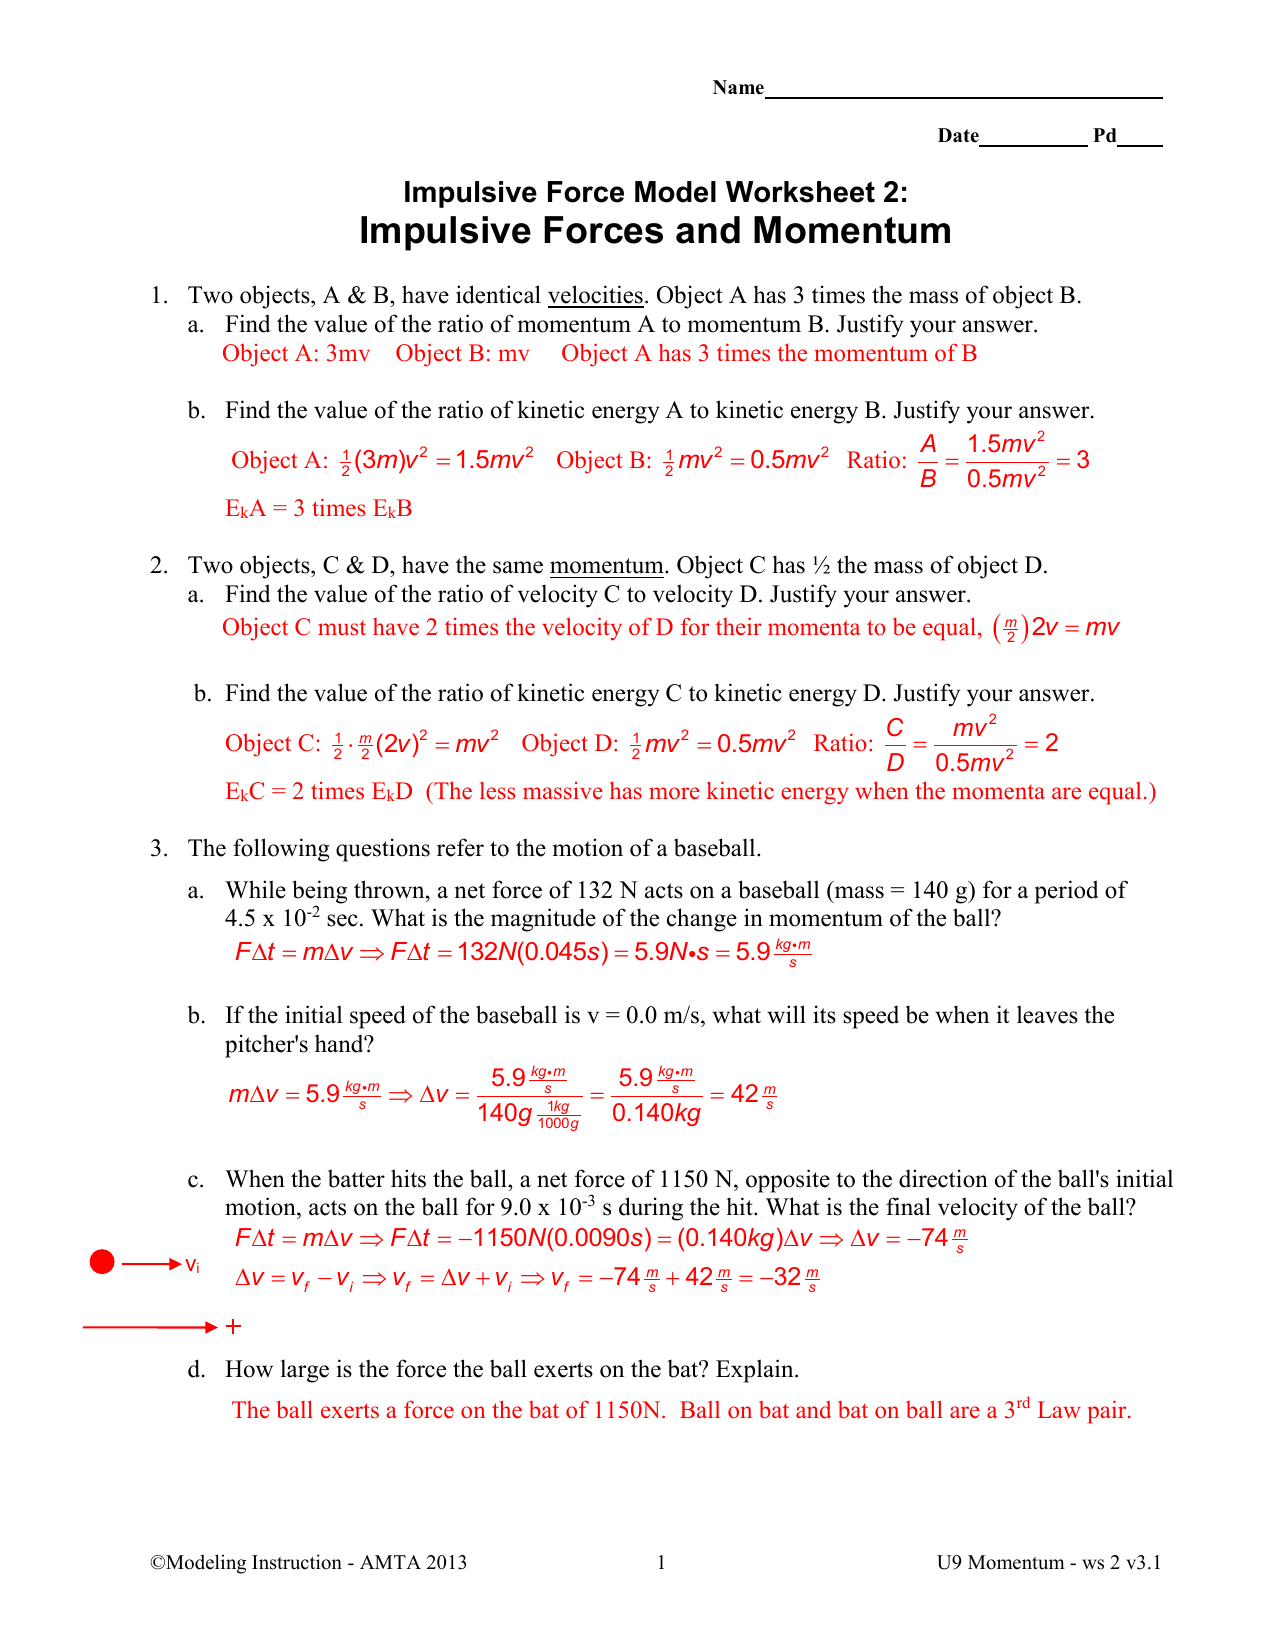 Unit 6 Worksheet 1 Physics Answers   Geotwitter Kids Activities besides Physics Unit 1  Velocity Time and Displacement Worksheet  1 in addition Wavelength Frequency Sd Energy Worksheet   Energy Etfs in addition Solved  D Mandan University Physics II Homework Worksheet furthermore GCSE Physics   Unit 4 – Atomic Structure – Lesson 6   Half Lives additionally 07 08 Physics 1 furthermore Unit Conversion Between Prefi Worksheets and Answers also high physics worksheets with answers – kaicook club furthermore Scientific Methods Worksheet 2 also chemistry   Gabe the Tutor also Stoichiometry Problems Worksheet 1 Answers The best worksheets image furthermore Physics Unit 1  Position Time Graph Worksheet  1 together with Unit 8  Mag ism   SSI Physics further impulse momentum ws1 moreover  in addition Westgate Mennonite Collegiate Unit 4  Chemical Equilibrium. on unit 4 worksheet 1 physics